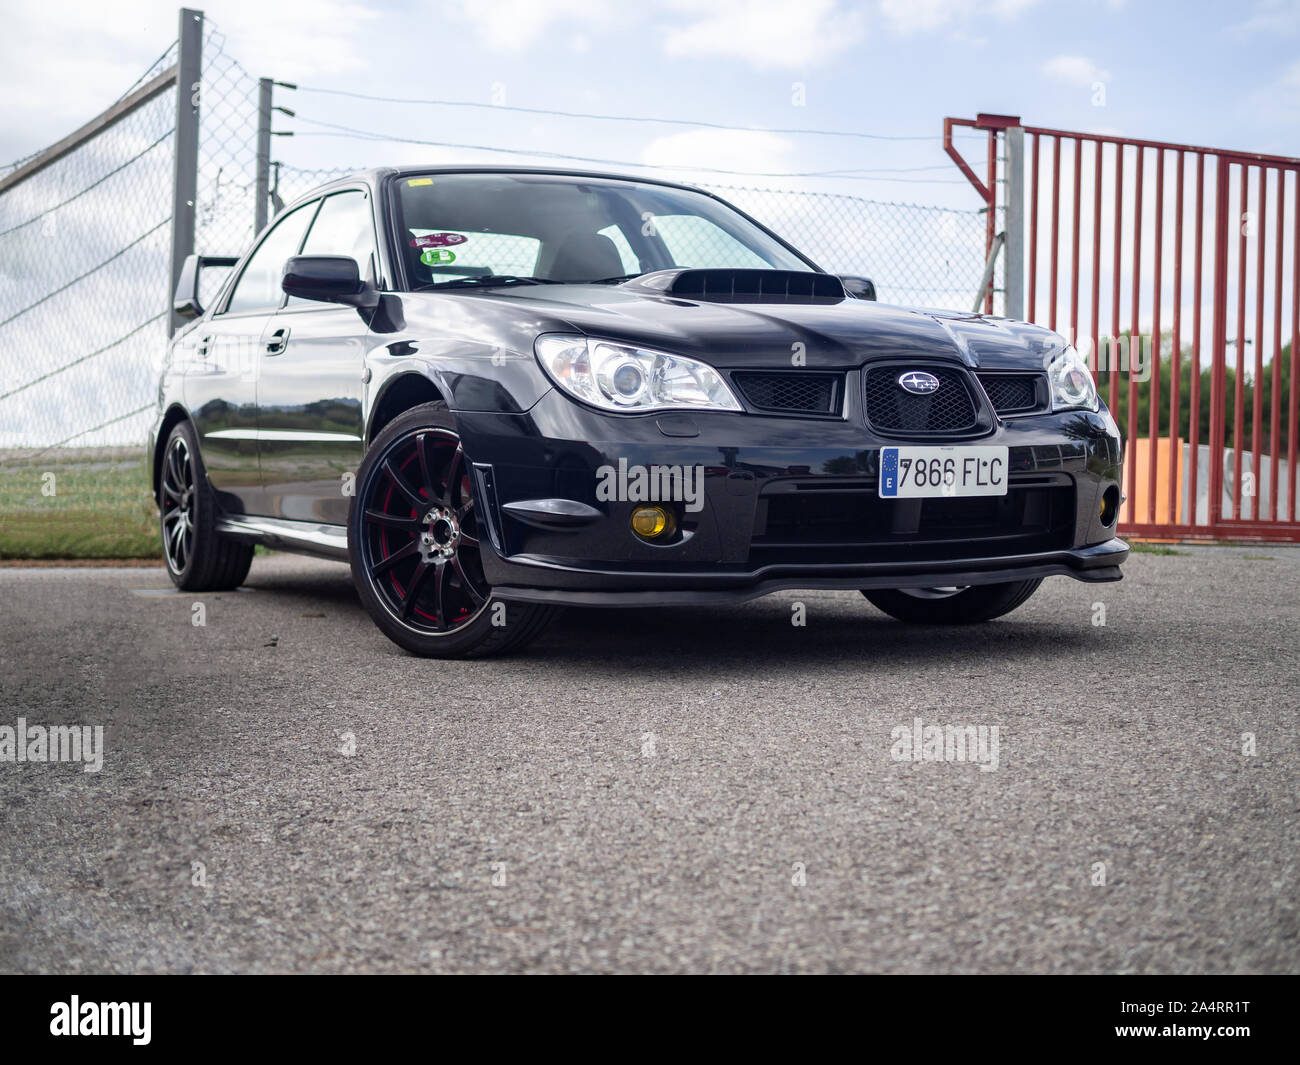 Subaru Impreza Wrx Turbo High Resolution Stock Photography And Images Alamy